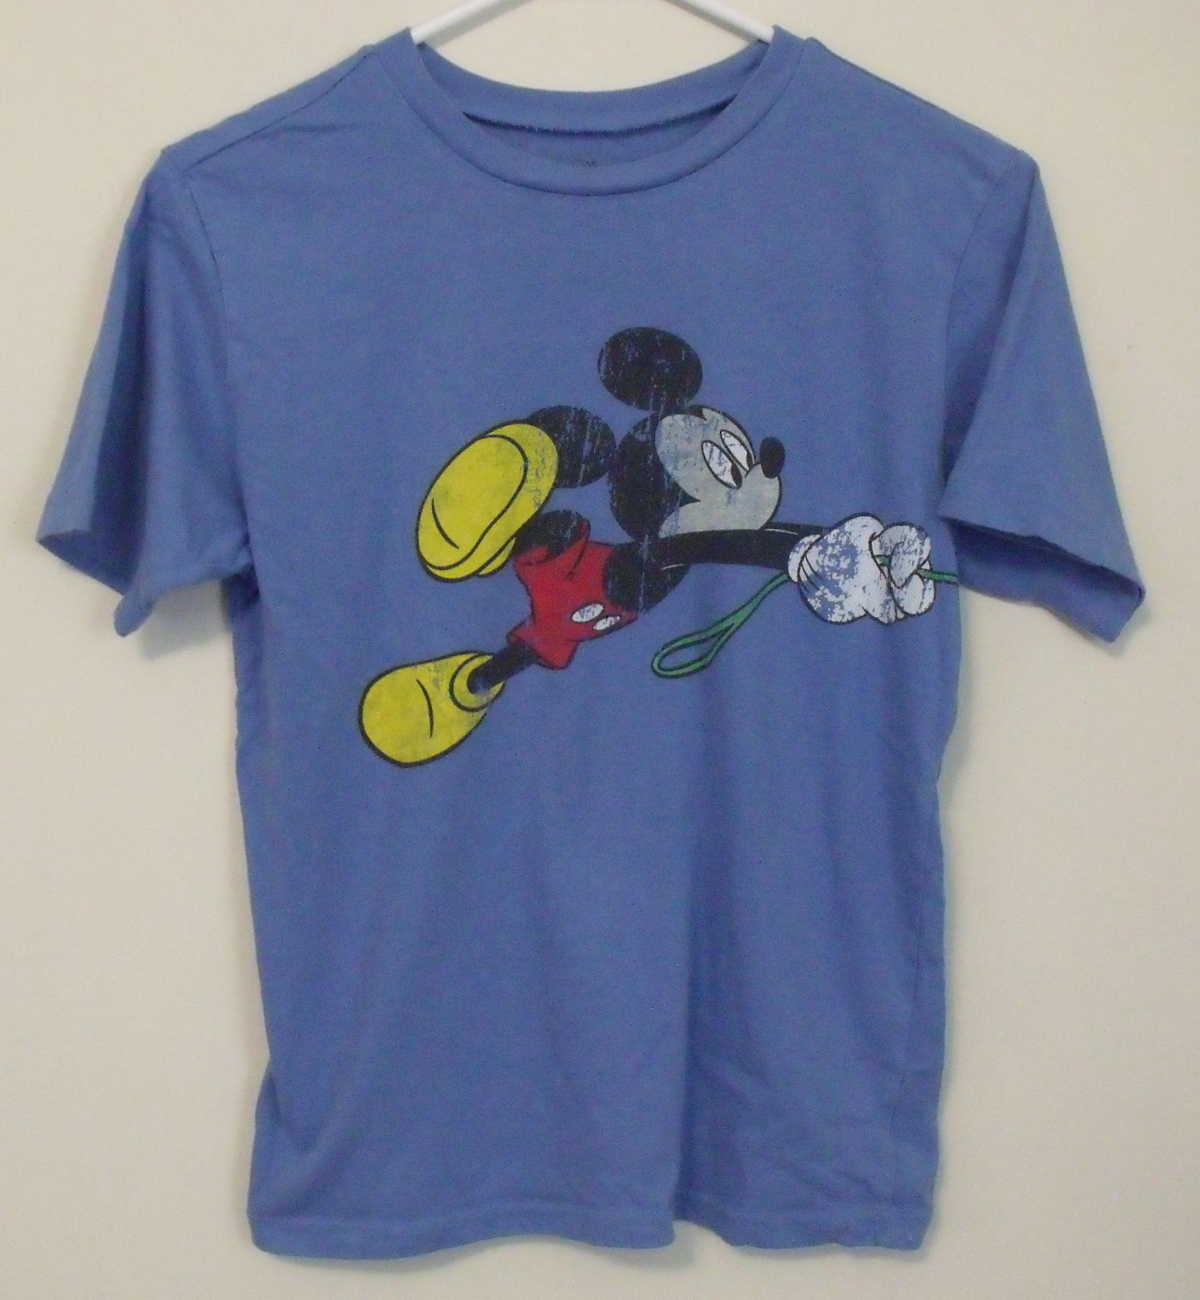 Disney bathing suit or pajama set for princess fun all day. Best for Boys For your rough-and-tumble little guy, stock up on character tees featuring his favorite heroes. From classic icons like Mickey to recent cartoons, you're sure to find designs he'll love. Whether for playtime, school or hanging out with mom and dad, check out super-fun shirts to go with jeans or shorts.